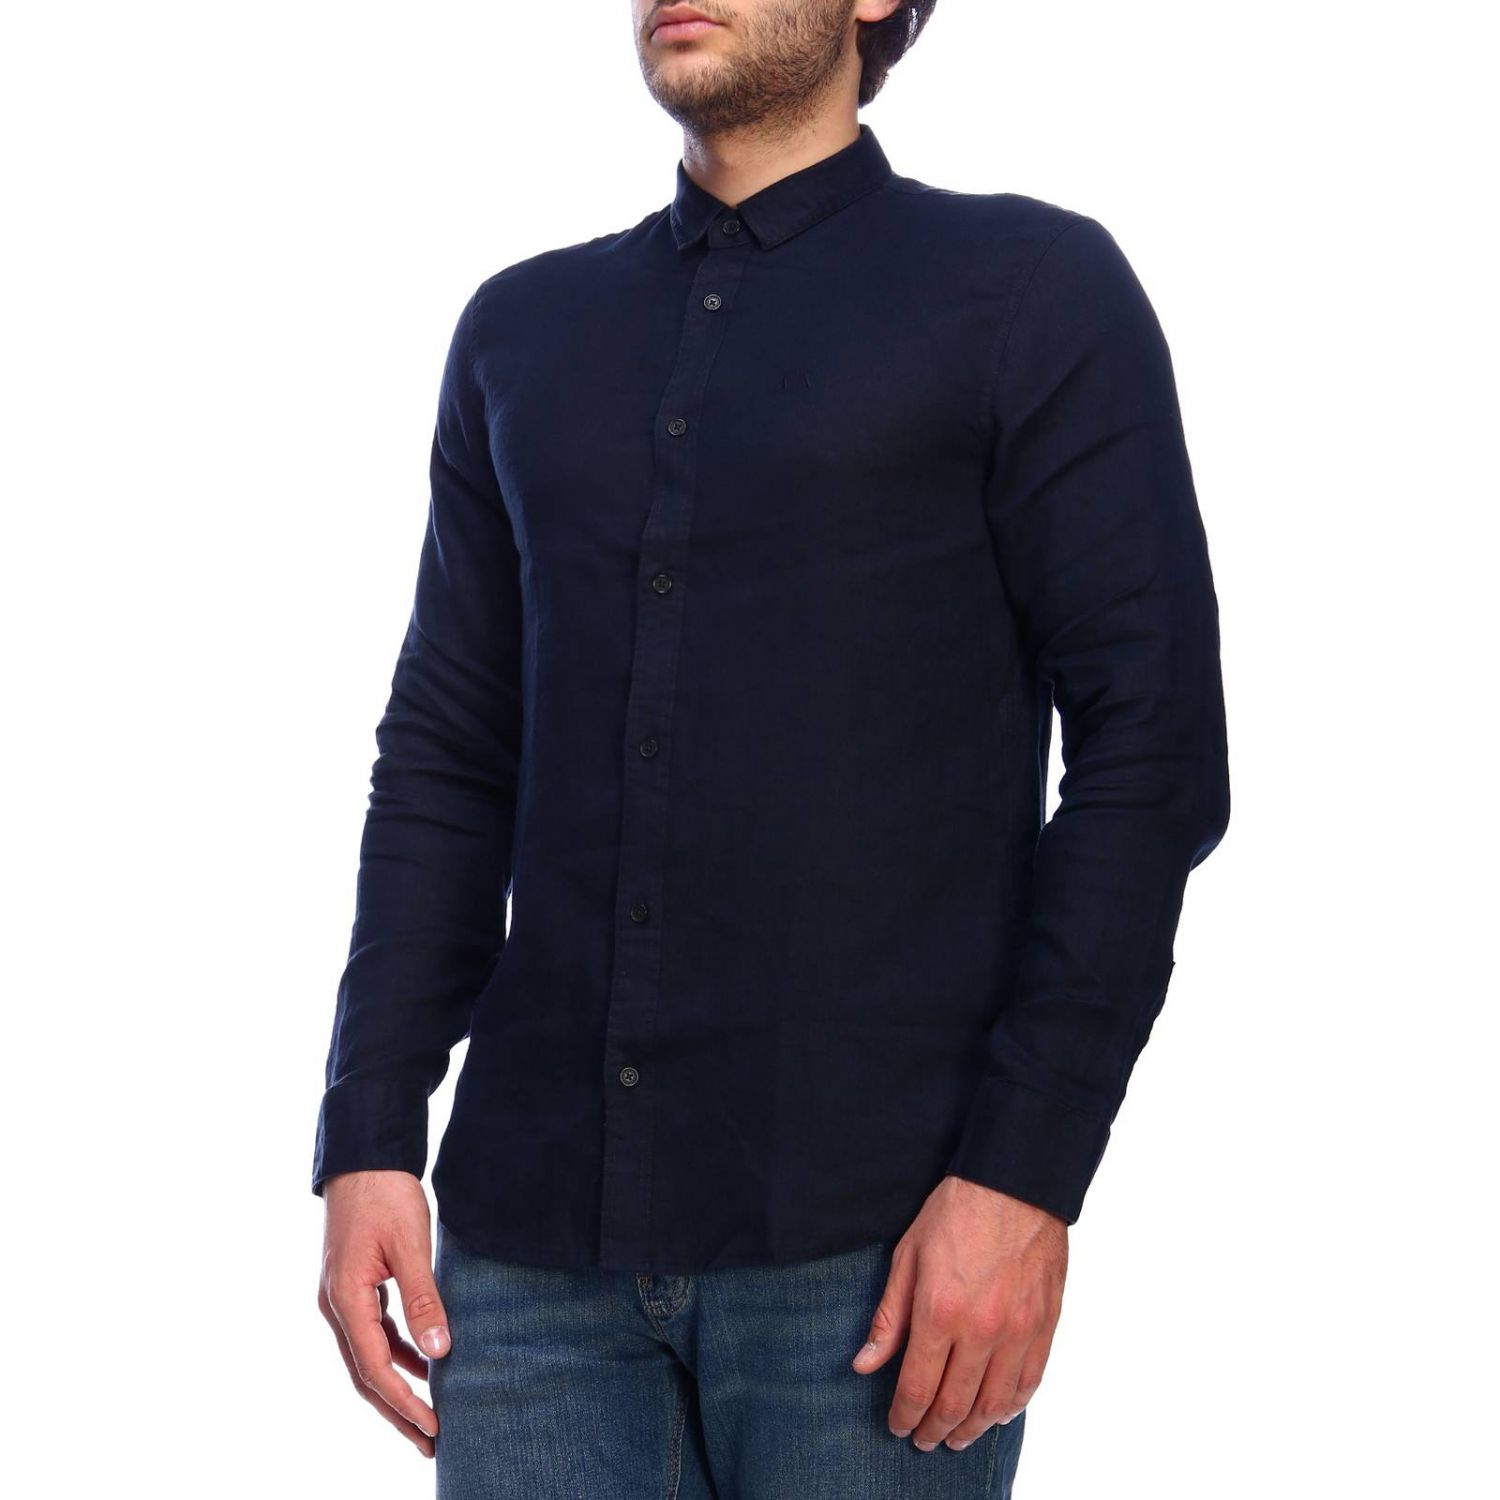 Shirt men Armani Exchange navy 2